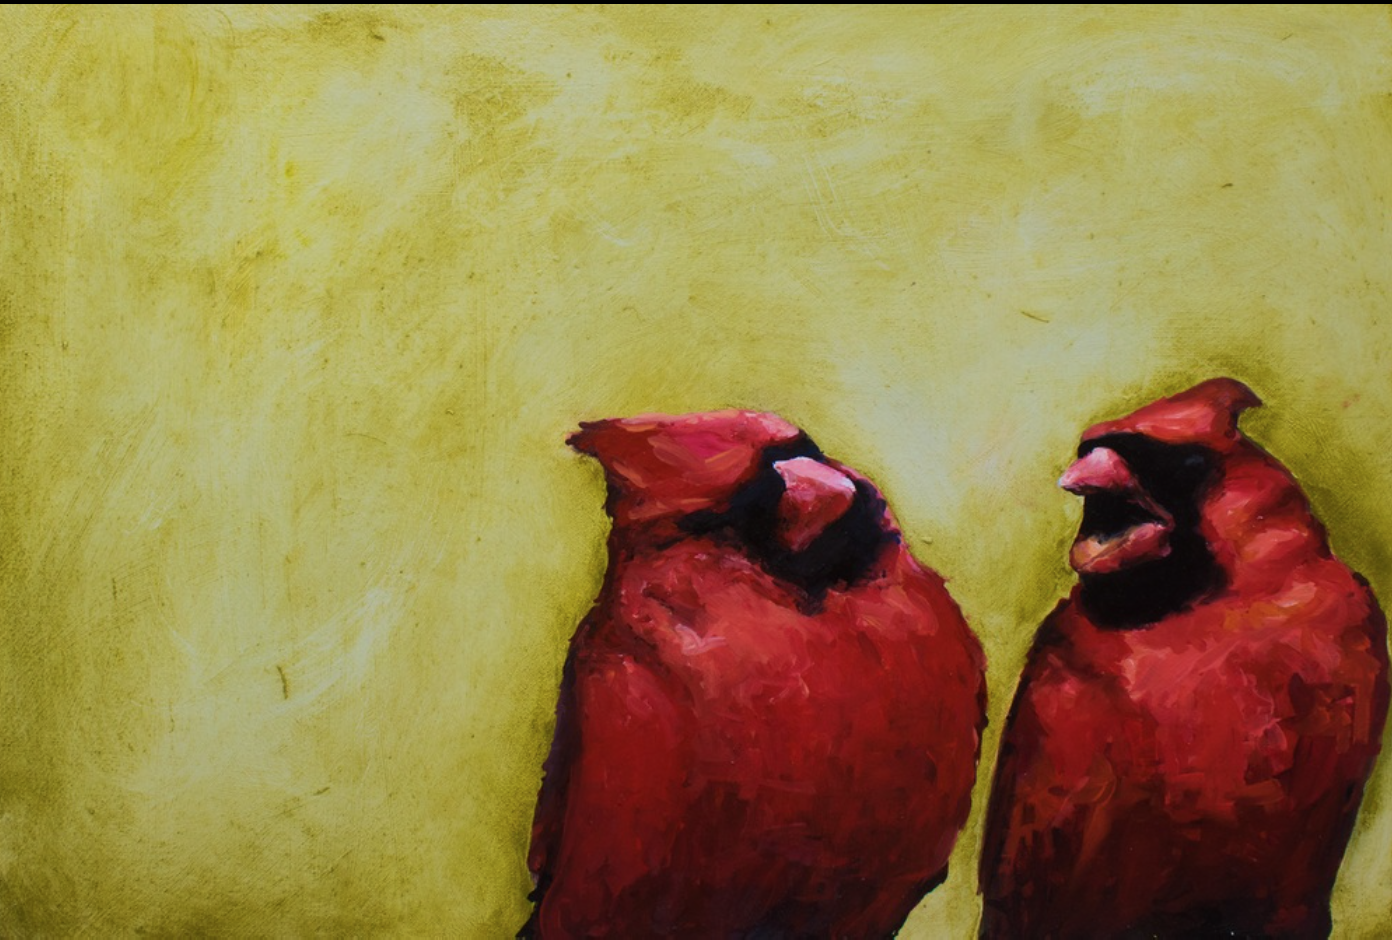 Robert Lococo - http://robertlococo.comI paint with oil, watercolor, encaustics. My subject matter is birdlife. A traditional subject that I put in contemporary scenarios, relationships. There is humor and beauty in my paintings.